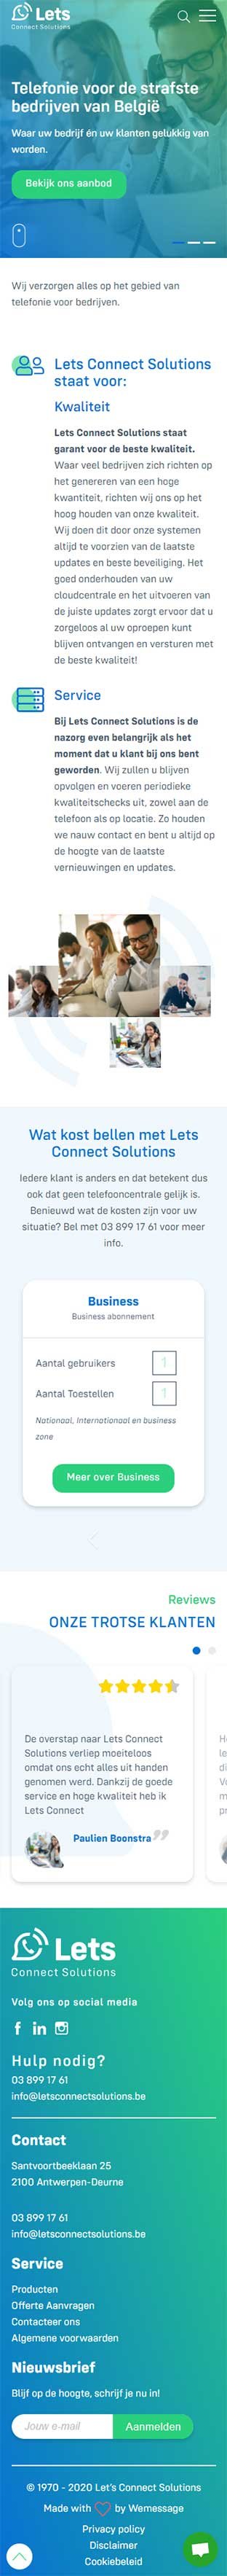 Let's Connect Solutions website voorbeeld op mobiele apparaten